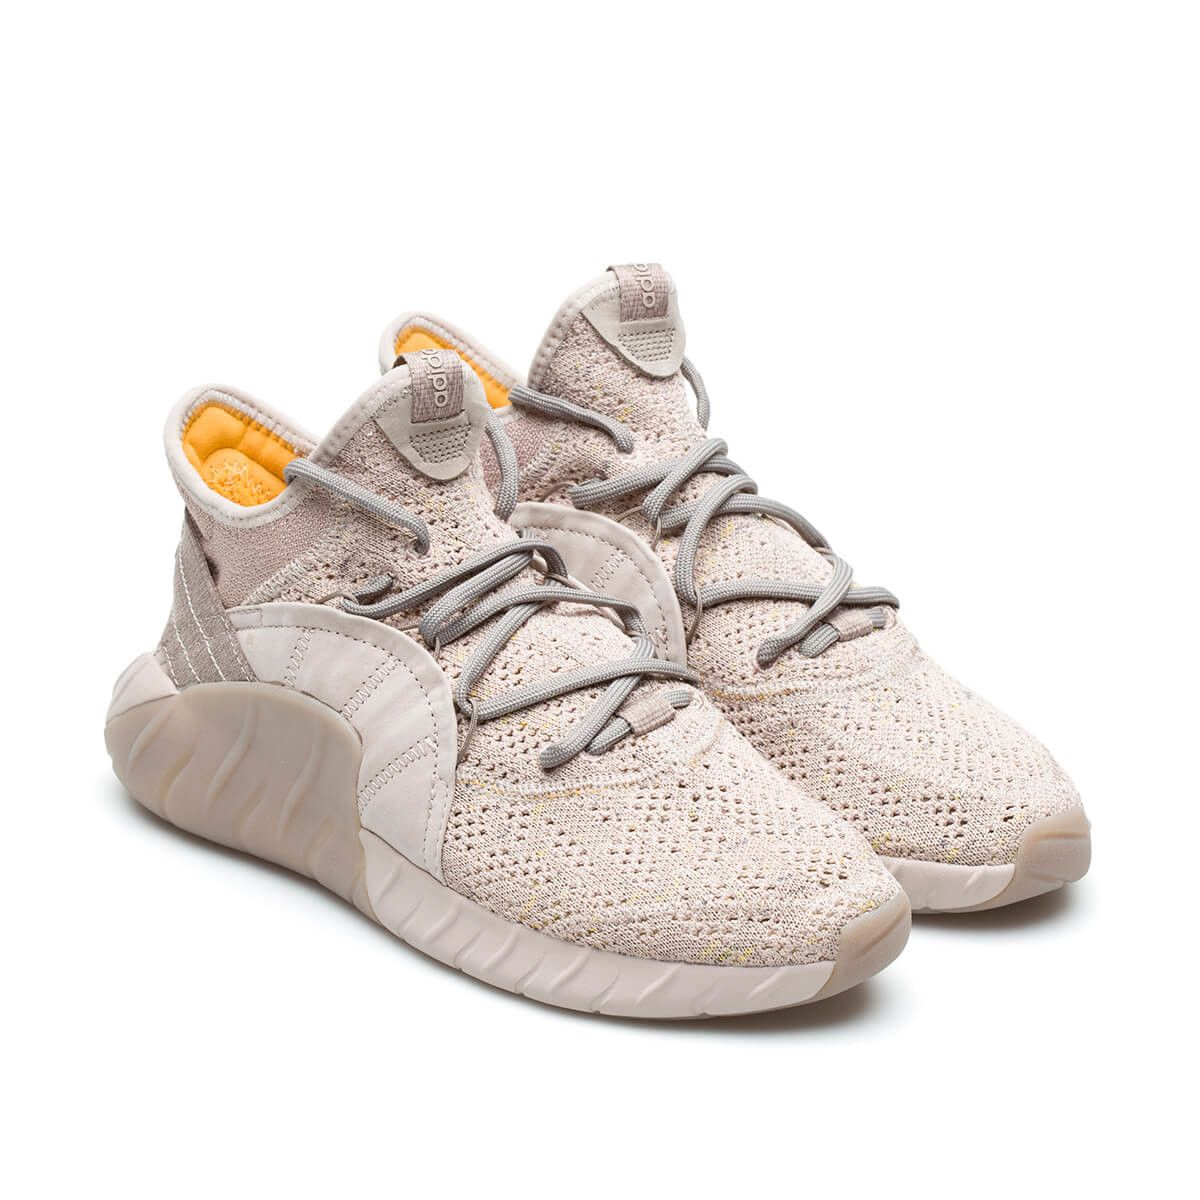 WOMEN'S Cheap Adidas TUBULAR ENTRAP Culture Kings